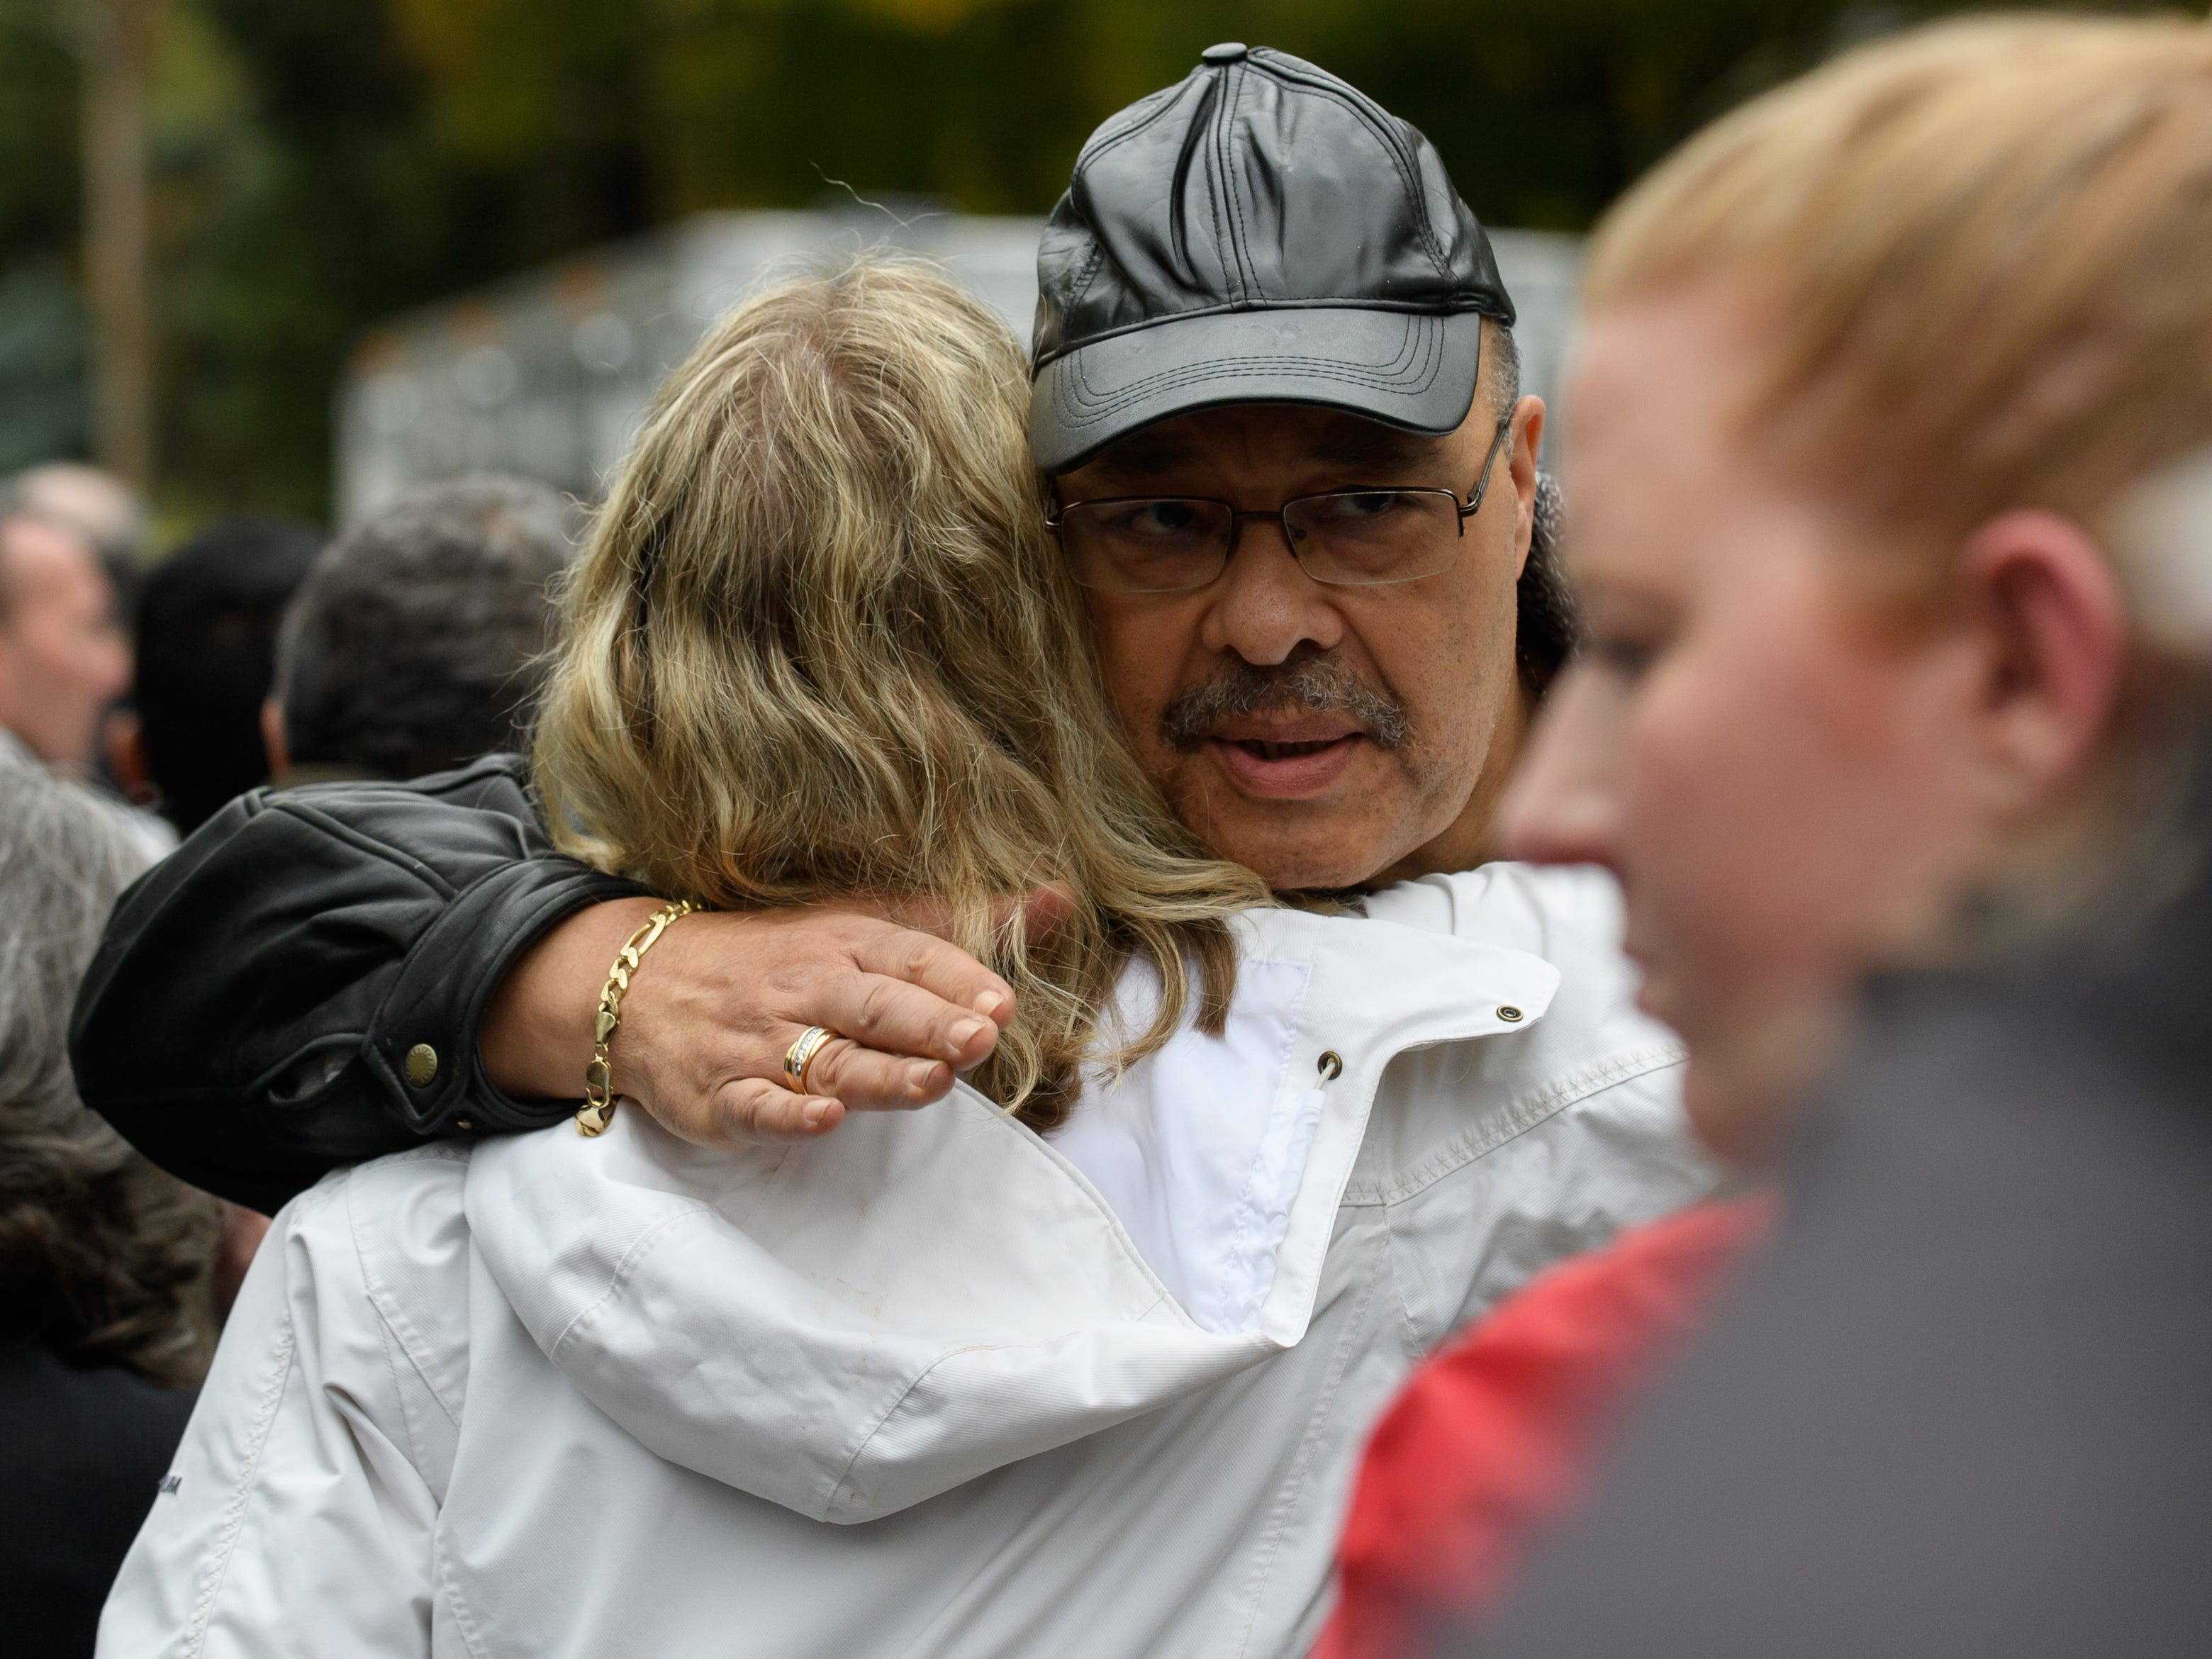 People comfort each other at the site of a mass shooting at the Tree of Life Synagogue.